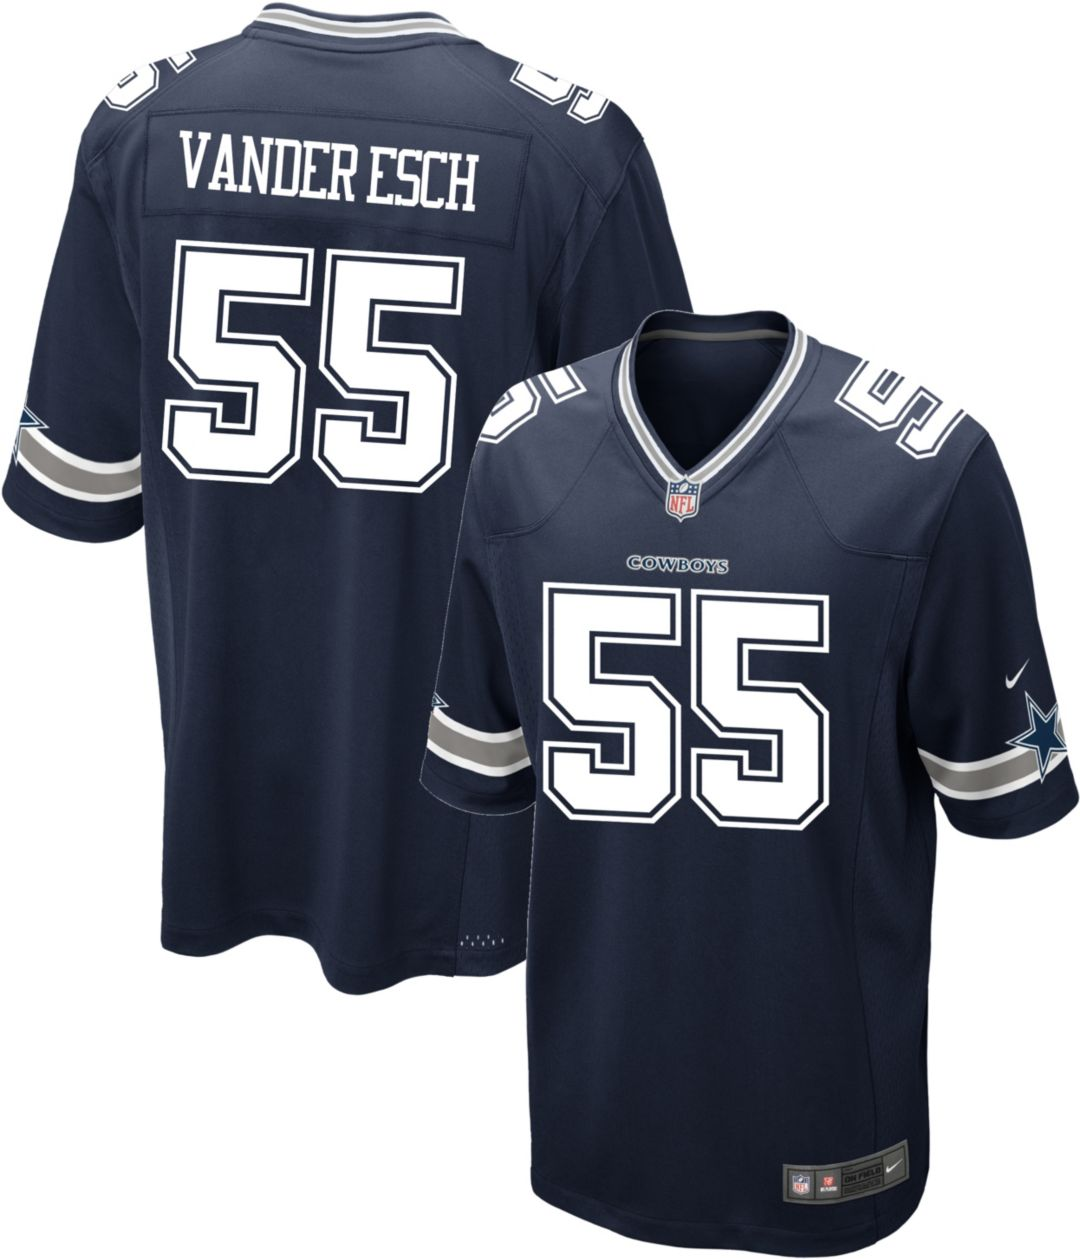 55 Home Game Vander Leighton Dallas Cowboys Jersey Esch Nike Youth cfcfceccaacb|Chad Finn's Touching All The Bases